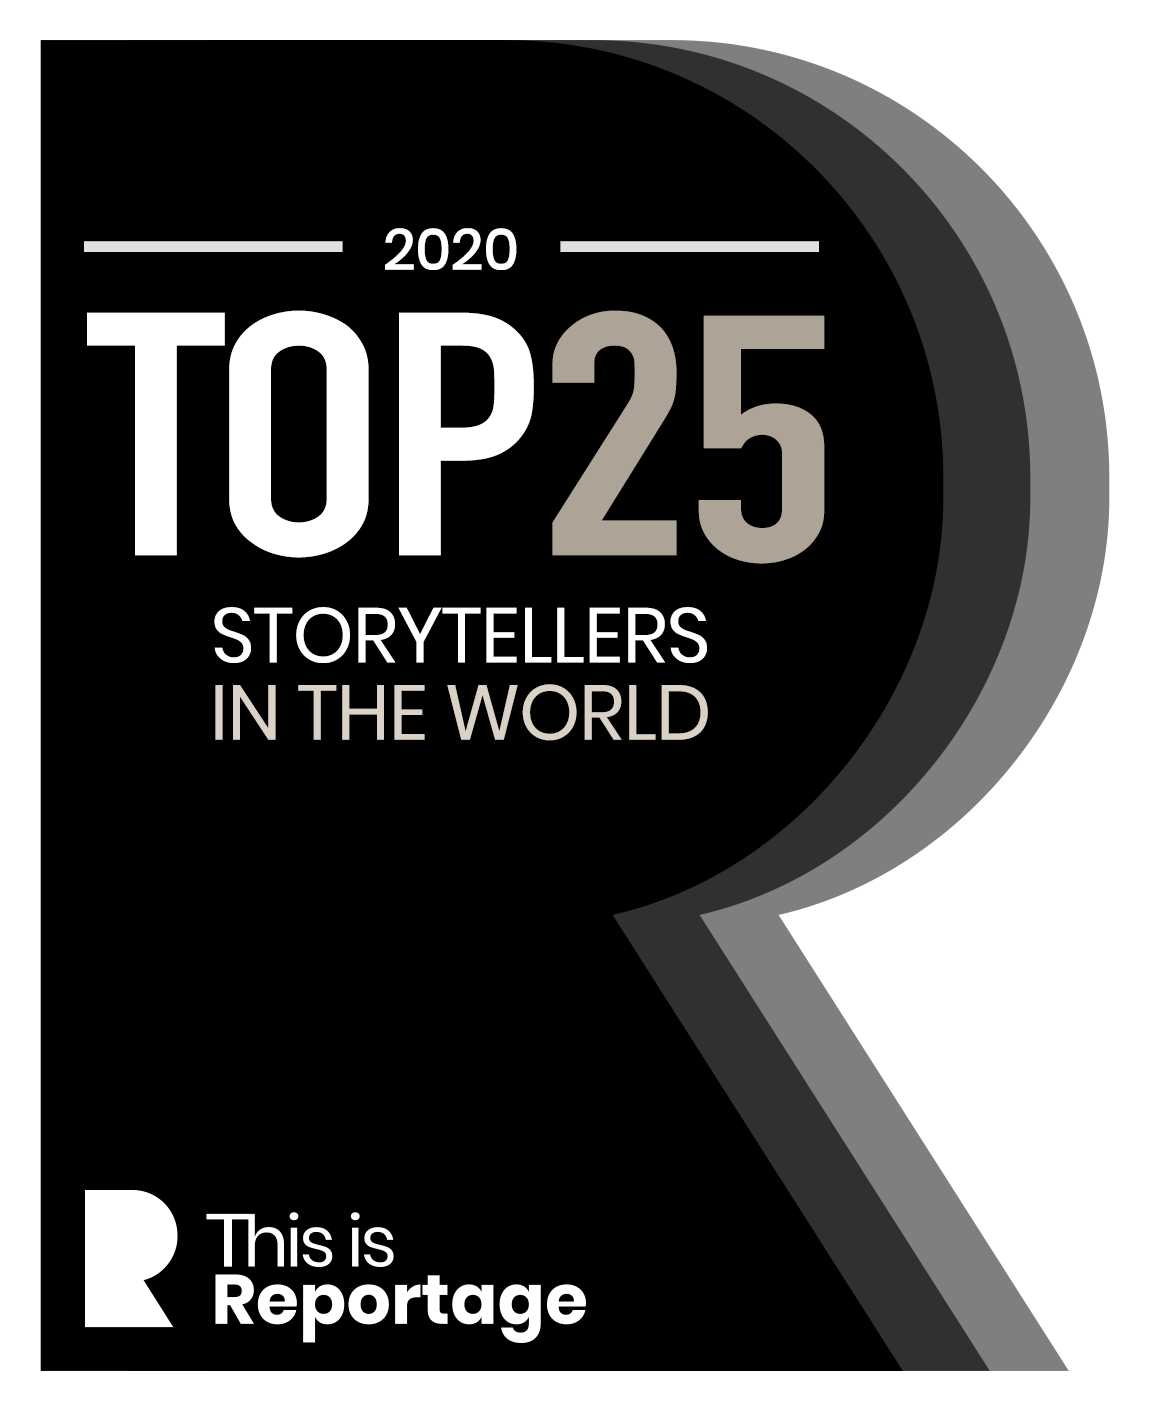 THIS IS REPORTAGE STORYTELLERS TOP25 WORLD 2020